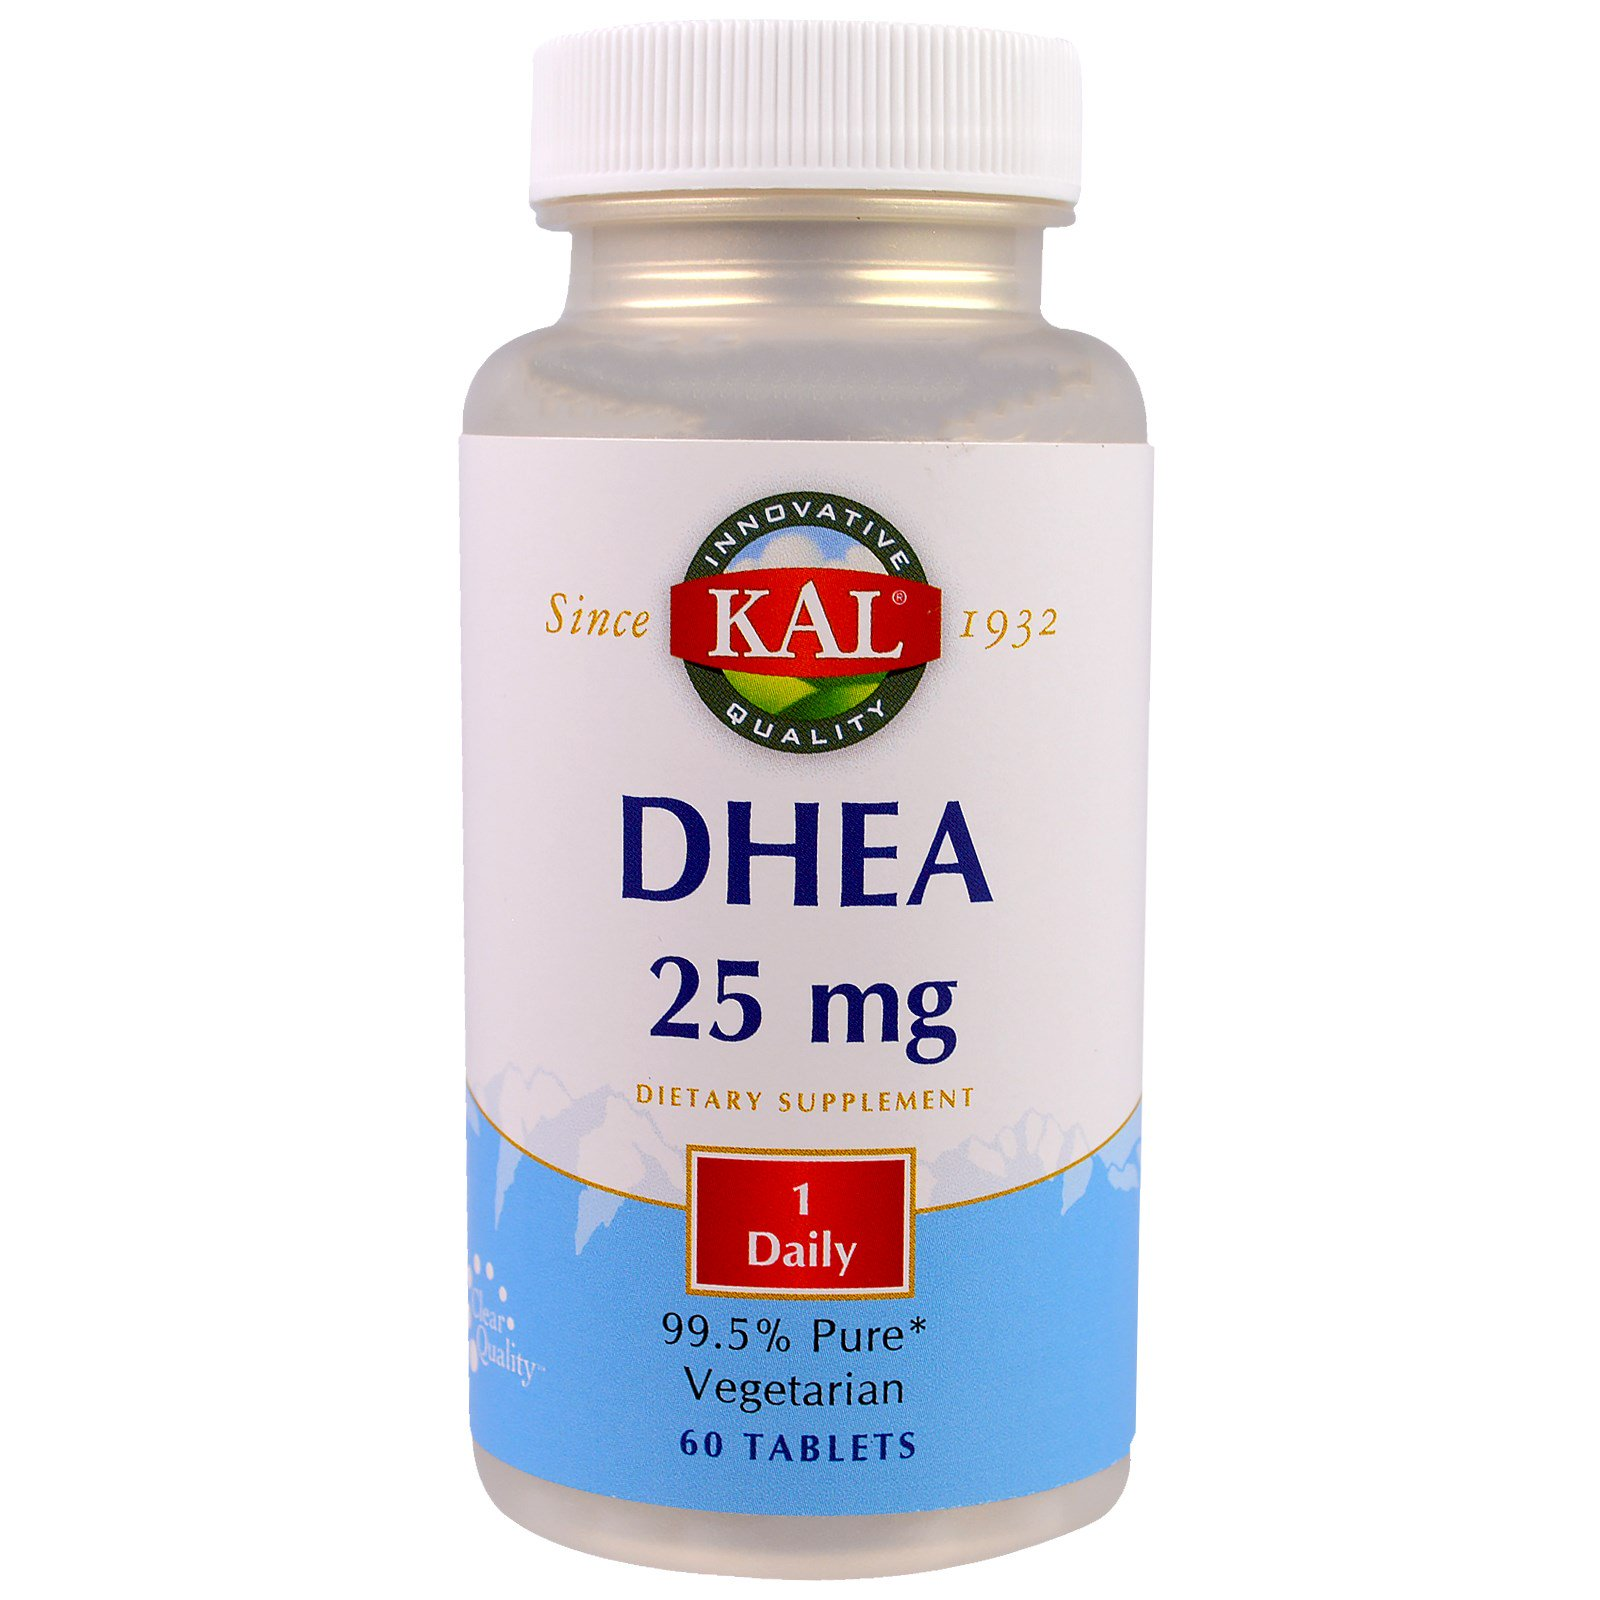 Image result for kal dhea